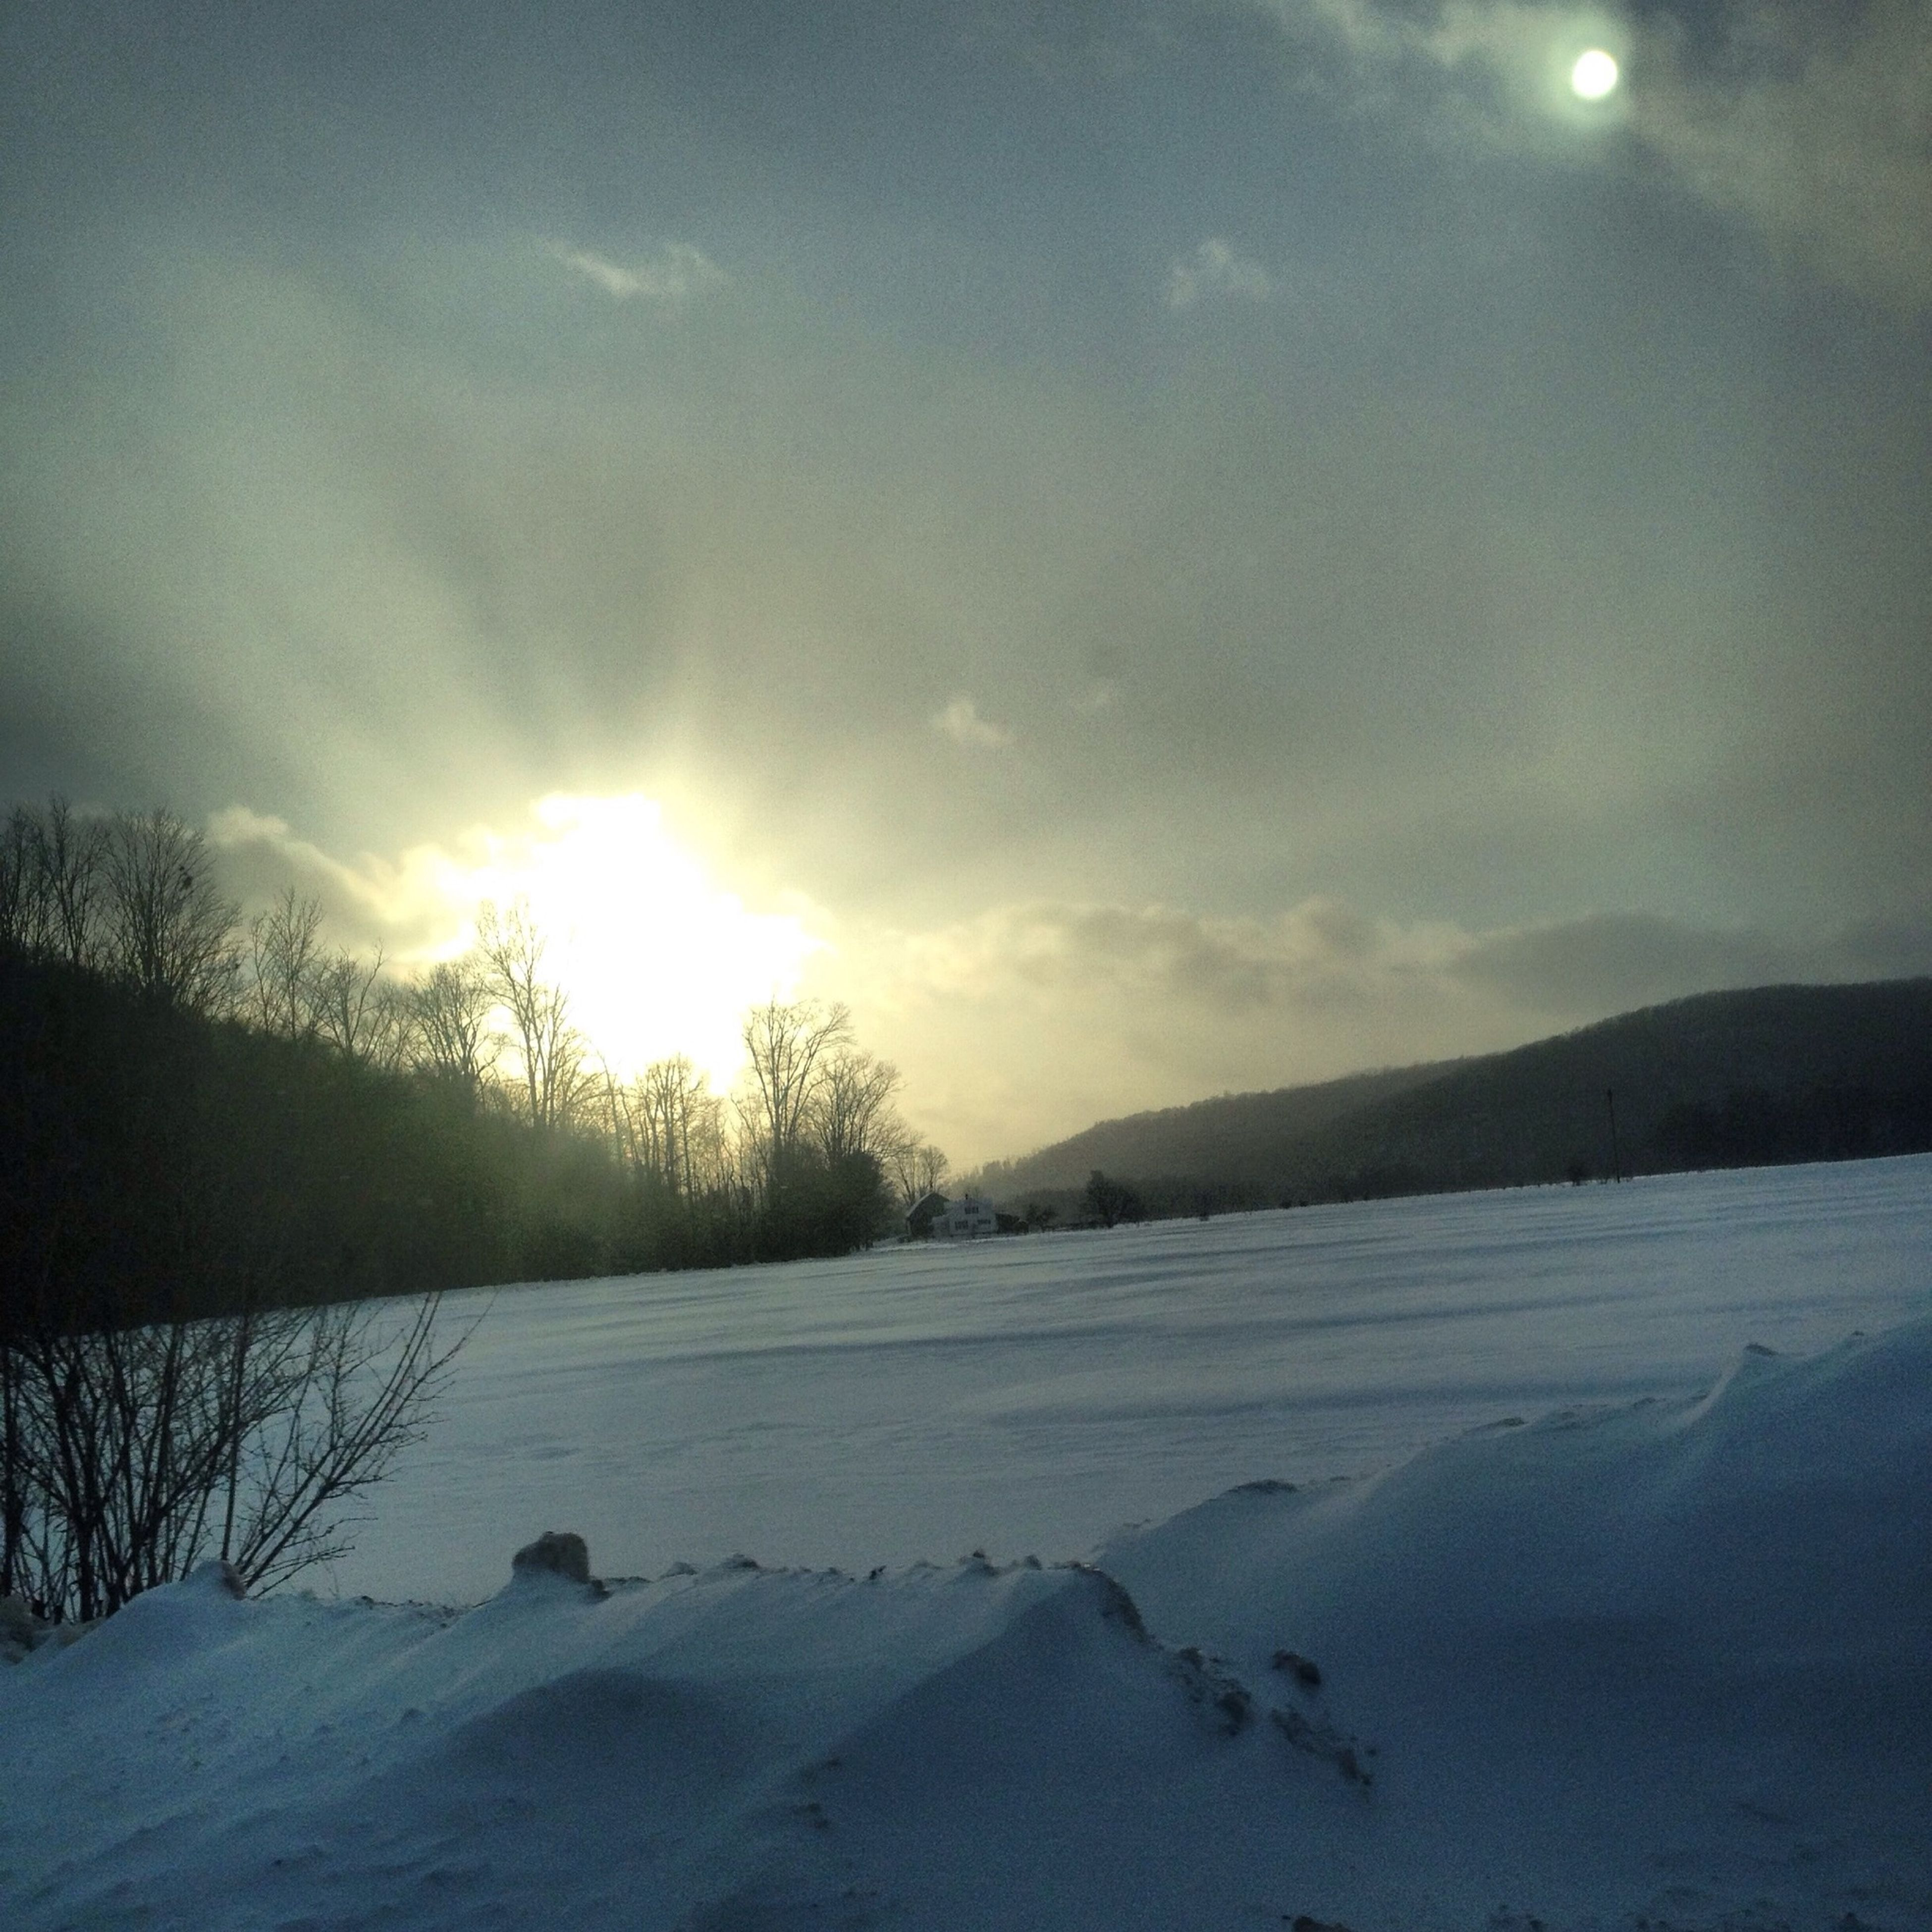 snow, winter, cold temperature, sun, season, weather, tranquil scene, tranquility, landscape, beauty in nature, covering, scenics, nature, sky, sunset, sunlight, field, frozen, sunbeam, snow covered